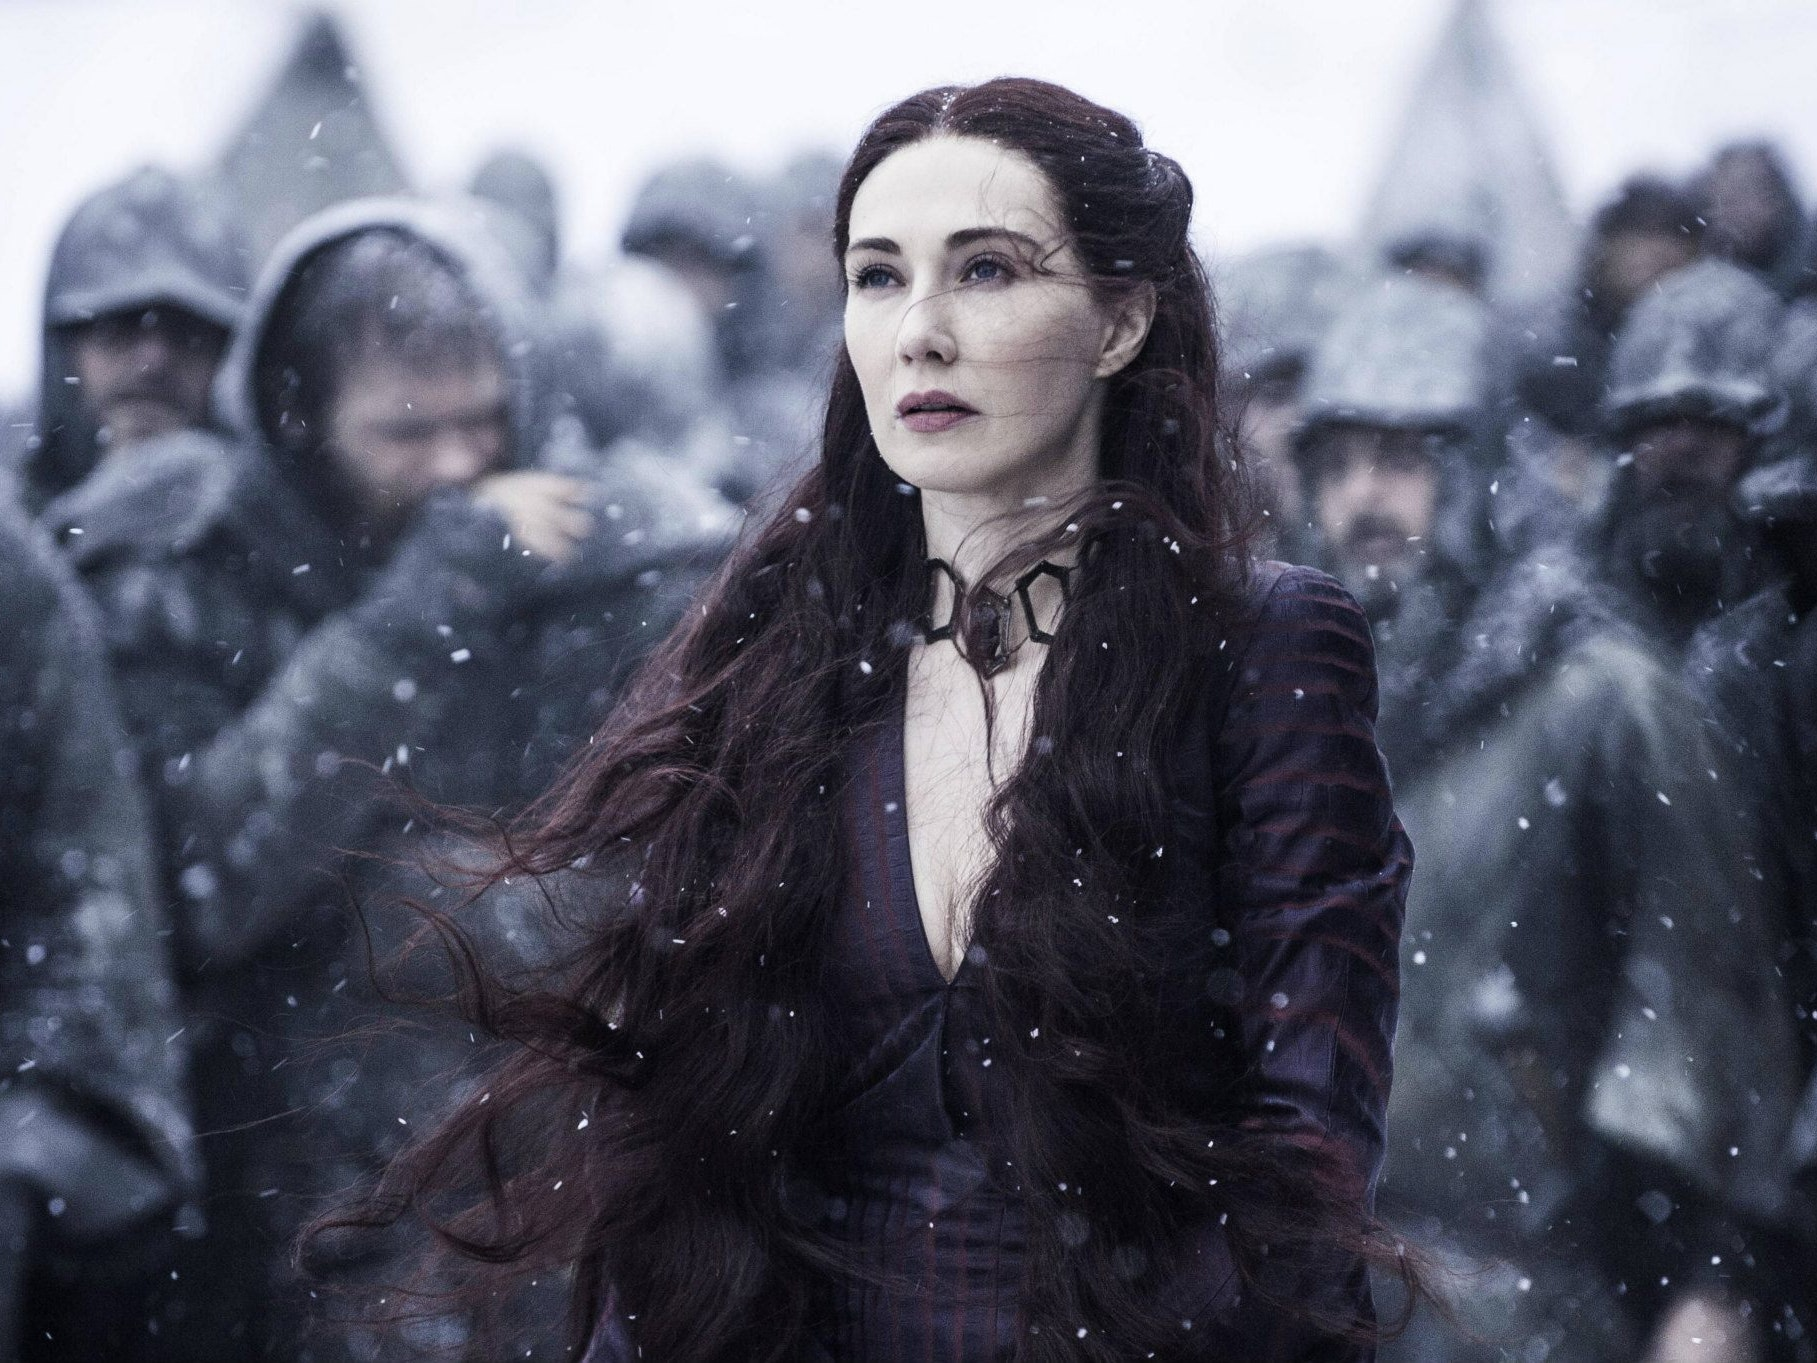 Taking the 'Game of Thrones' Season 6 Premiere Description Literally